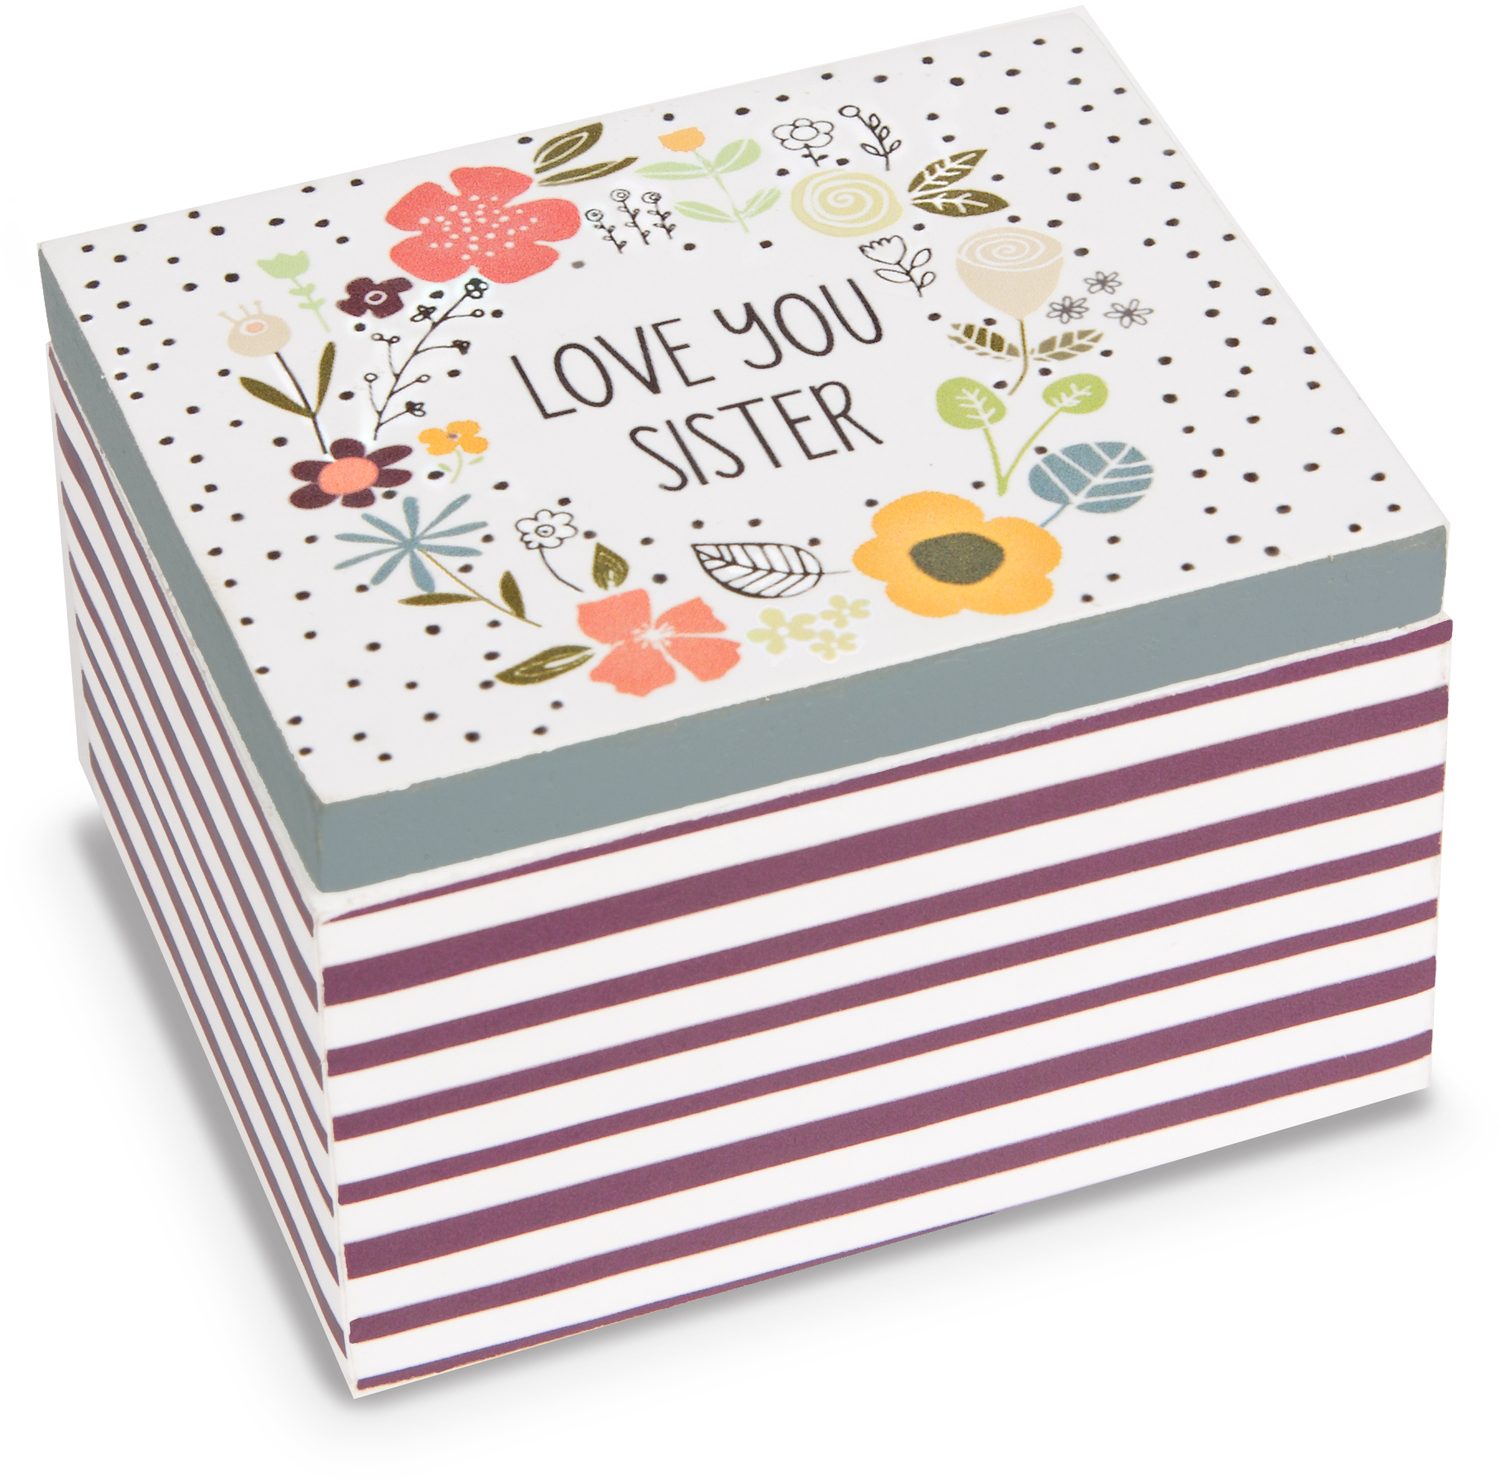 Sister by Love You More - Sister - 2.25 x 2 x 1.5 MDF Trinket  Box